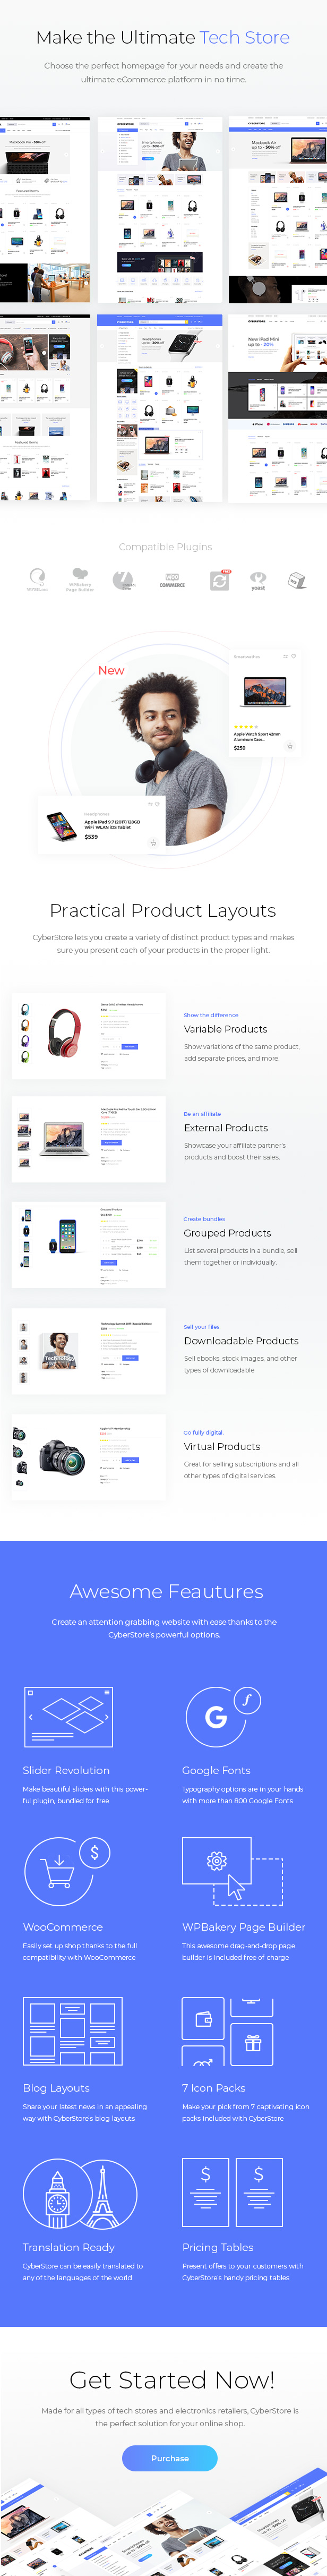 CyberStore - Simple eCommerce Shop - 1